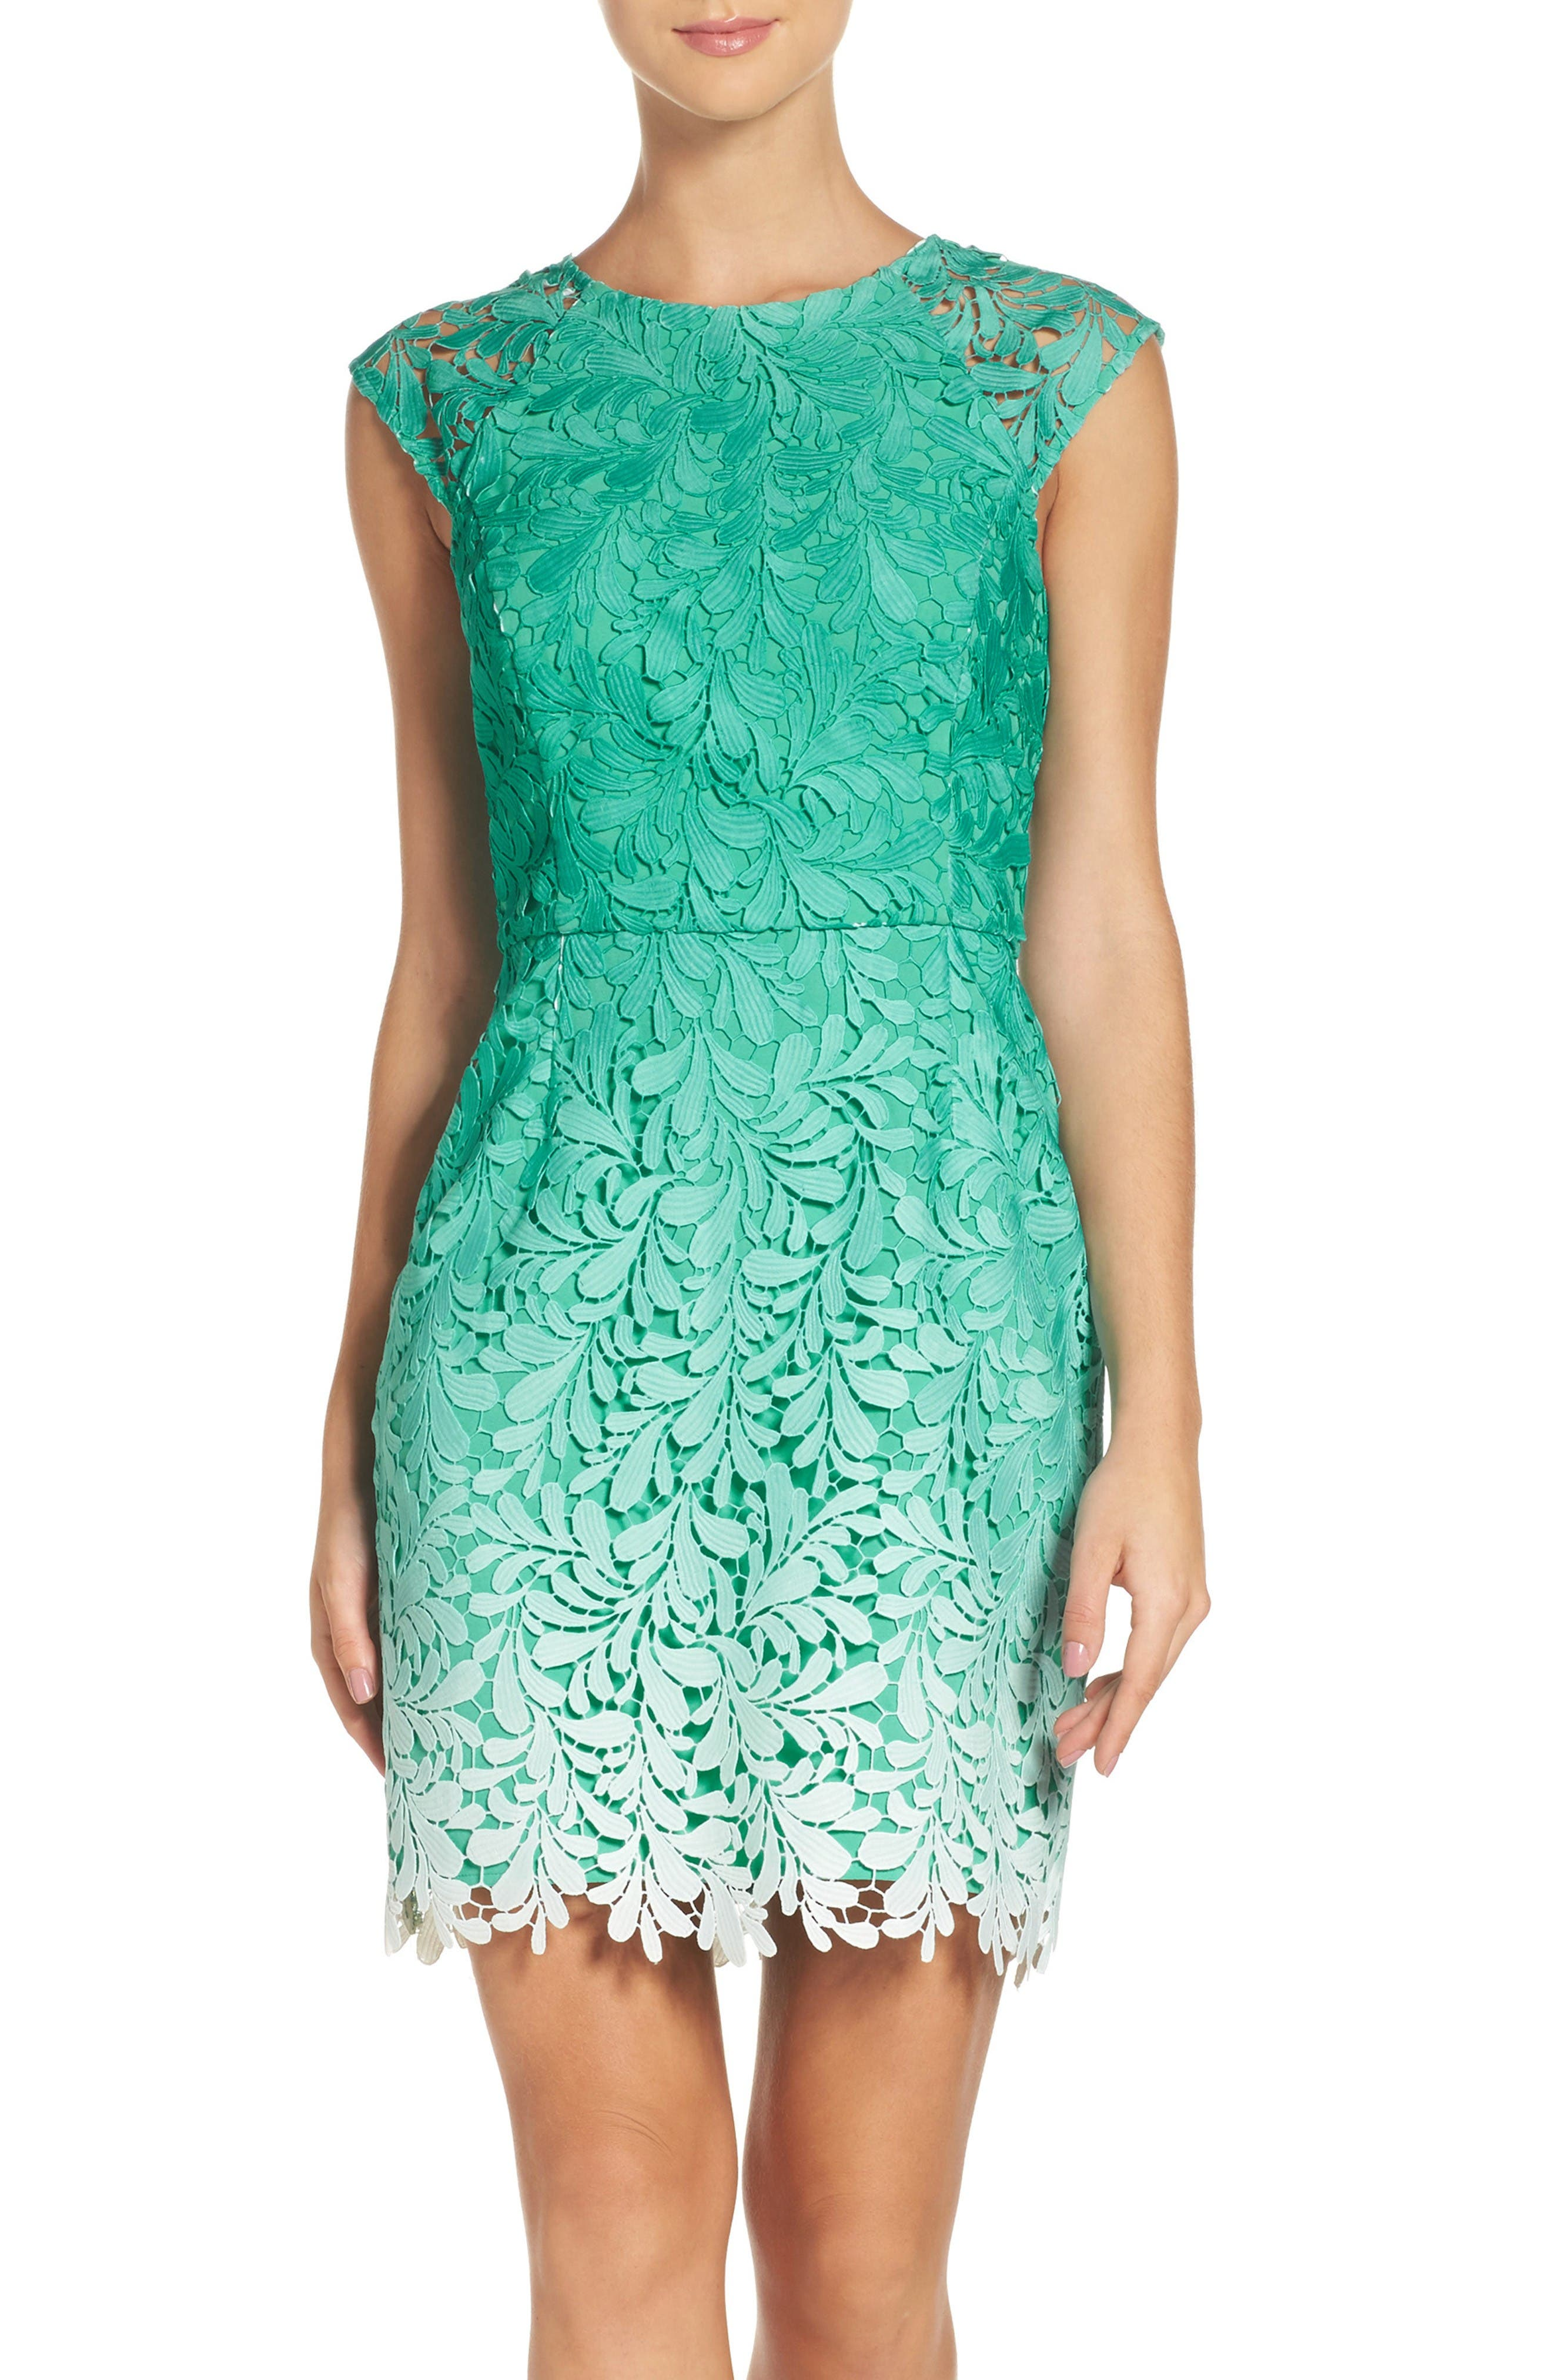 Ombré Lace Sheath Dress,                             Alternate thumbnail 4, color,                             Seafoam